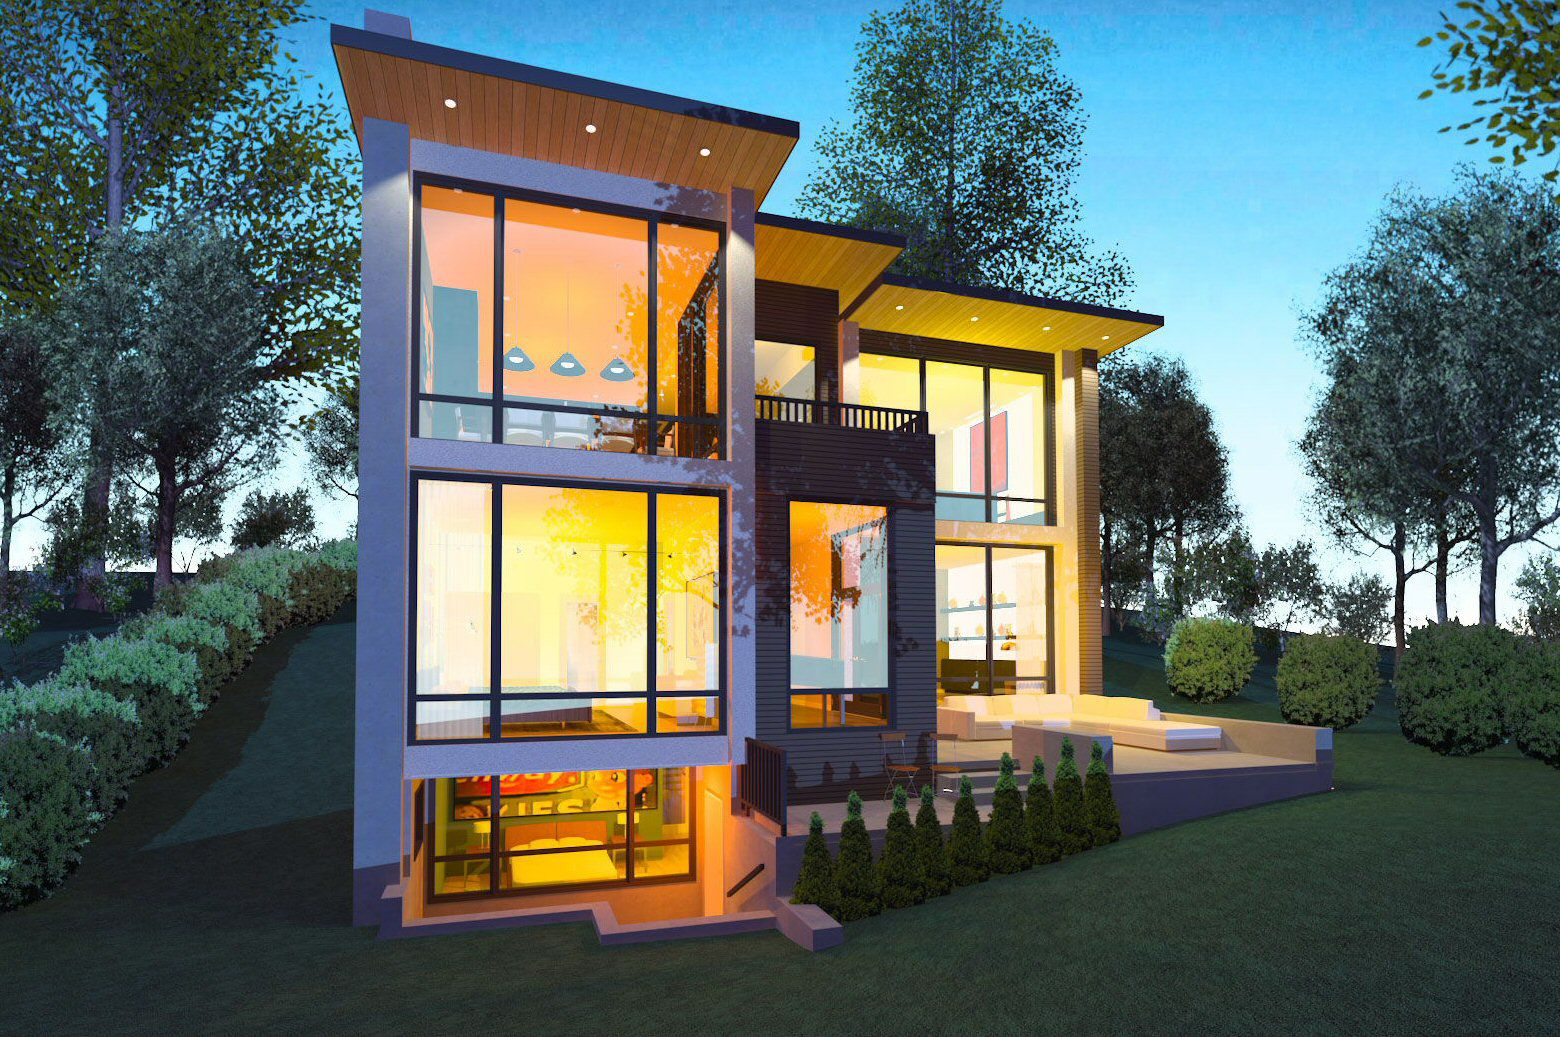 The Best Home Design Software Programs for DIY Architects ...